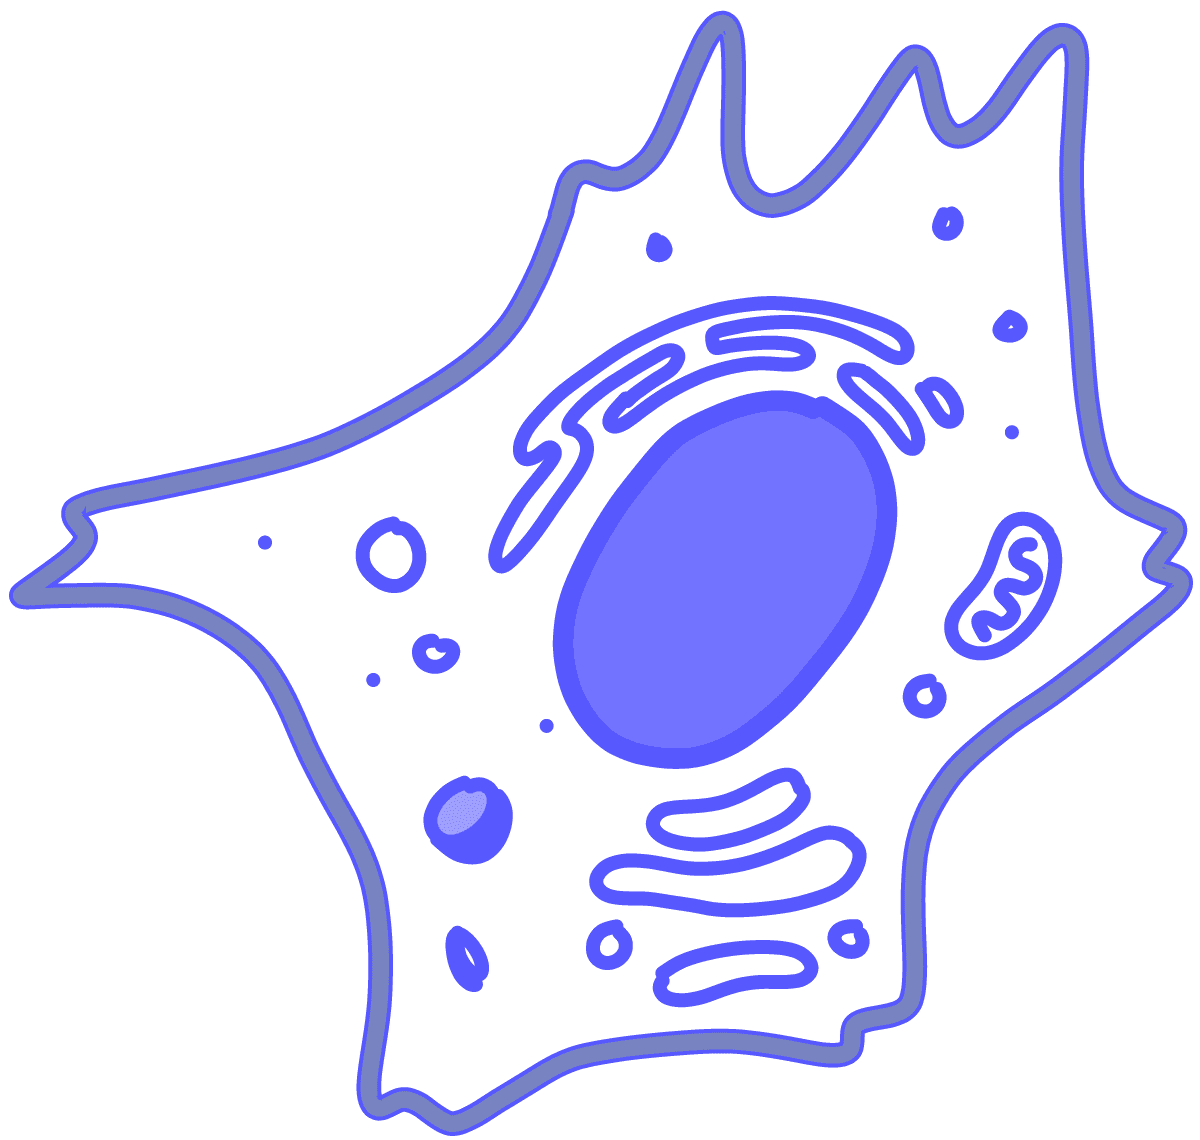 Image of a blue eukaryotic cell